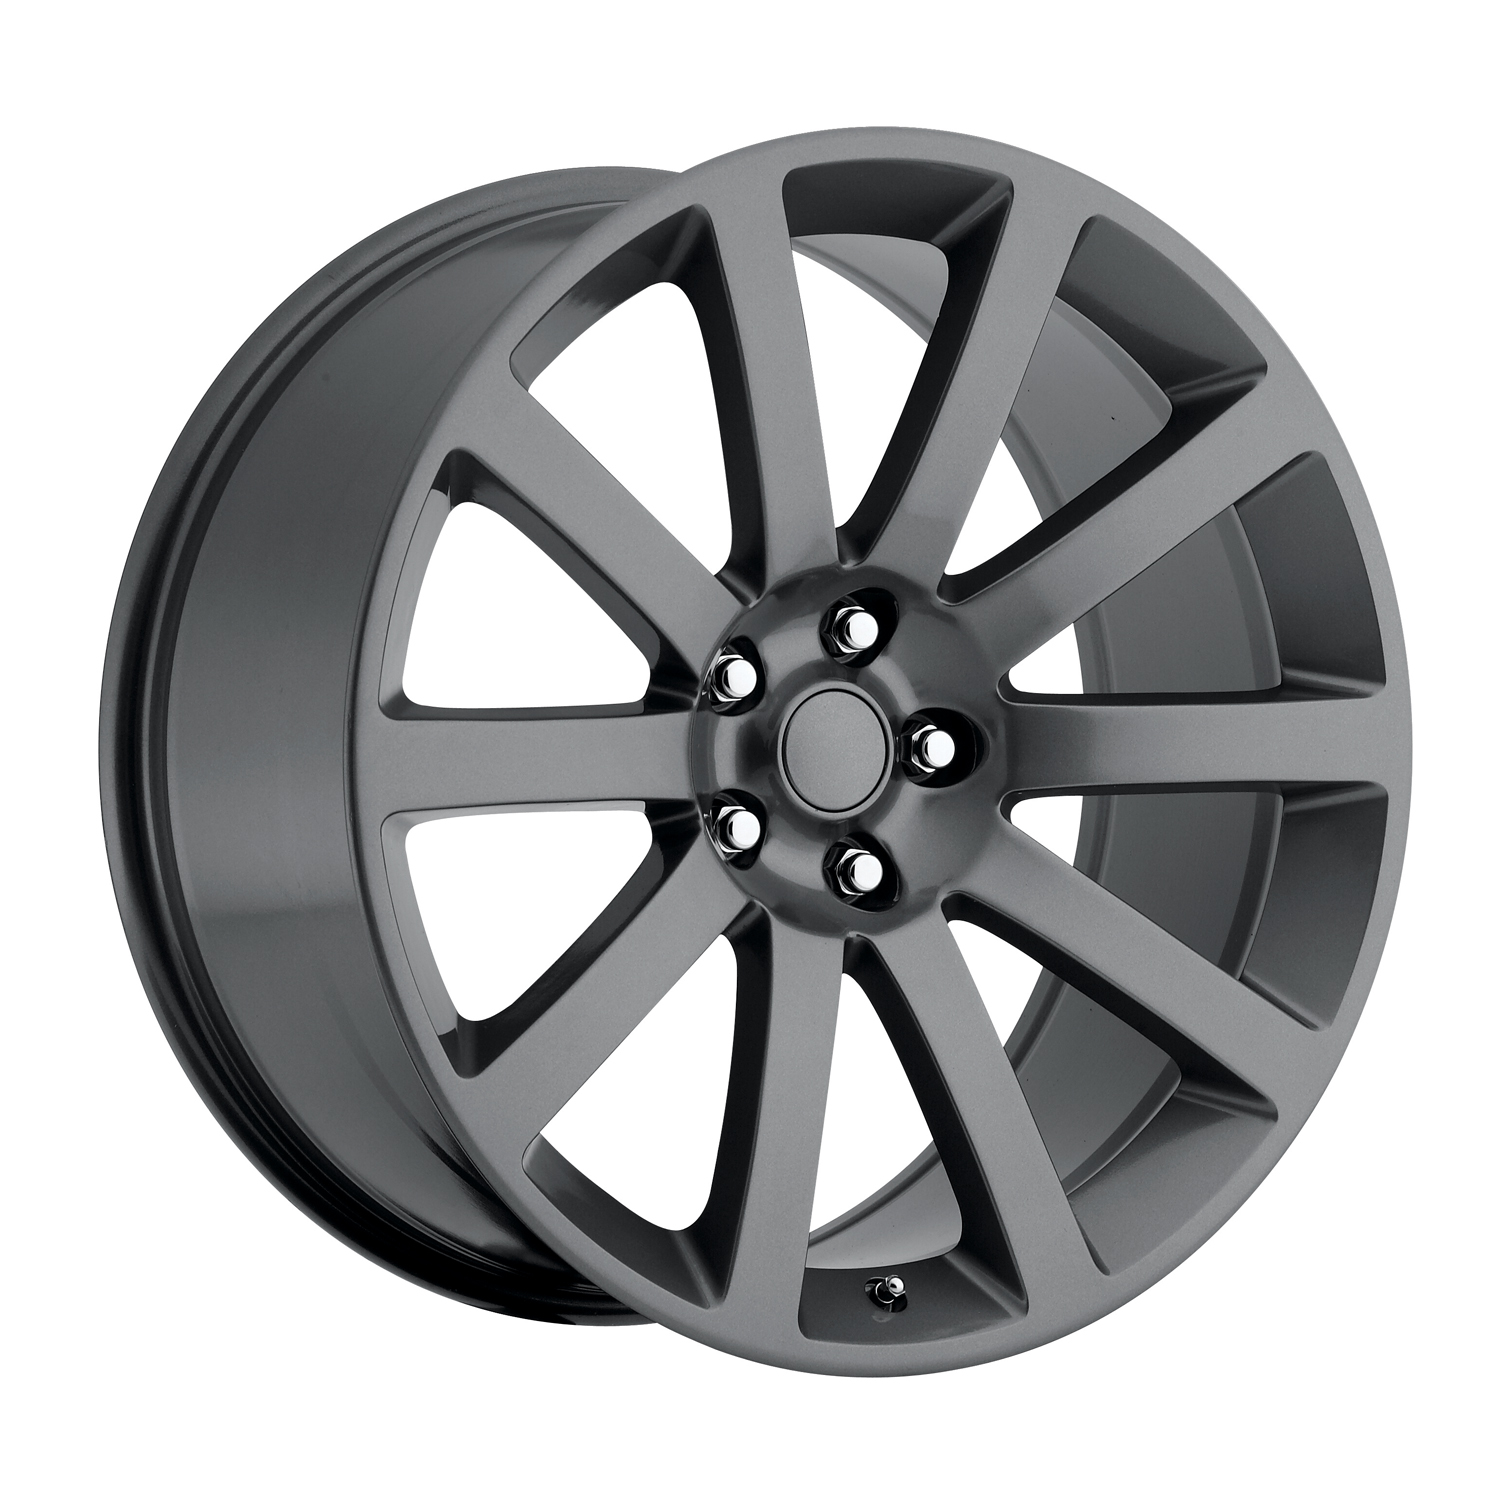 Chrysler 300C 2005-2010 20x9 5x115 +18 - SRT8 Style Wheel - Grey With Cap